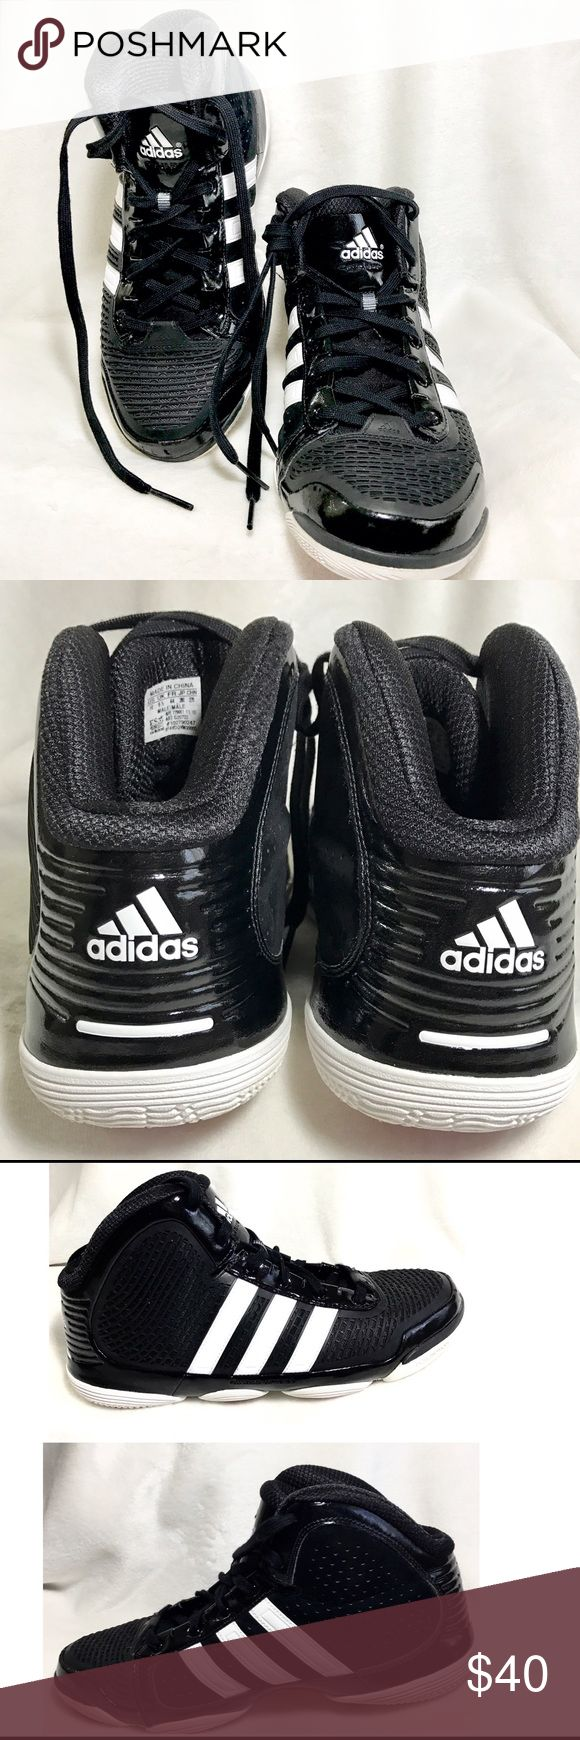 adiprene adidas basketball shoes